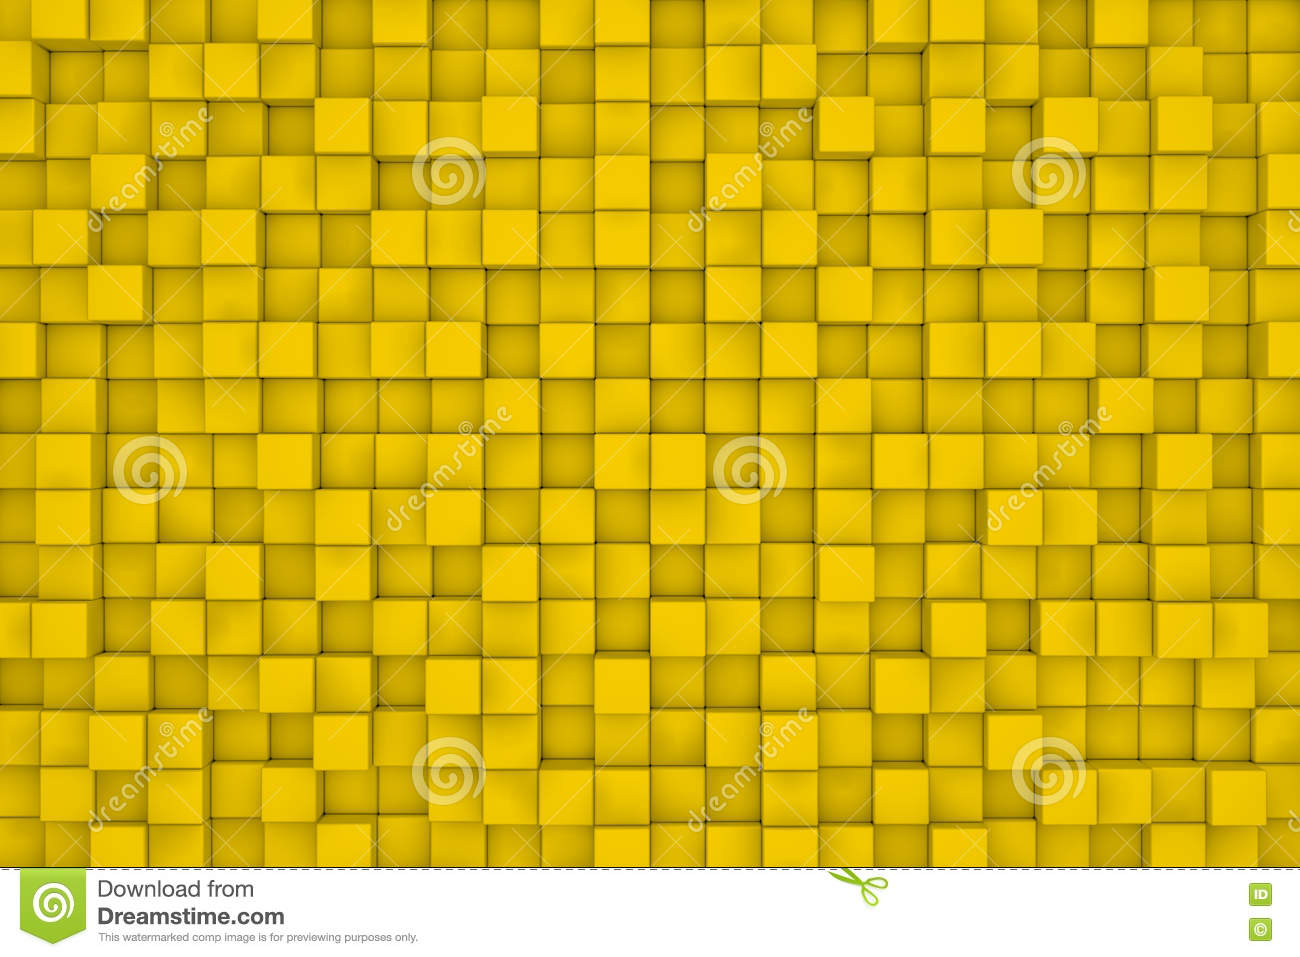 Wall of yellow cubes